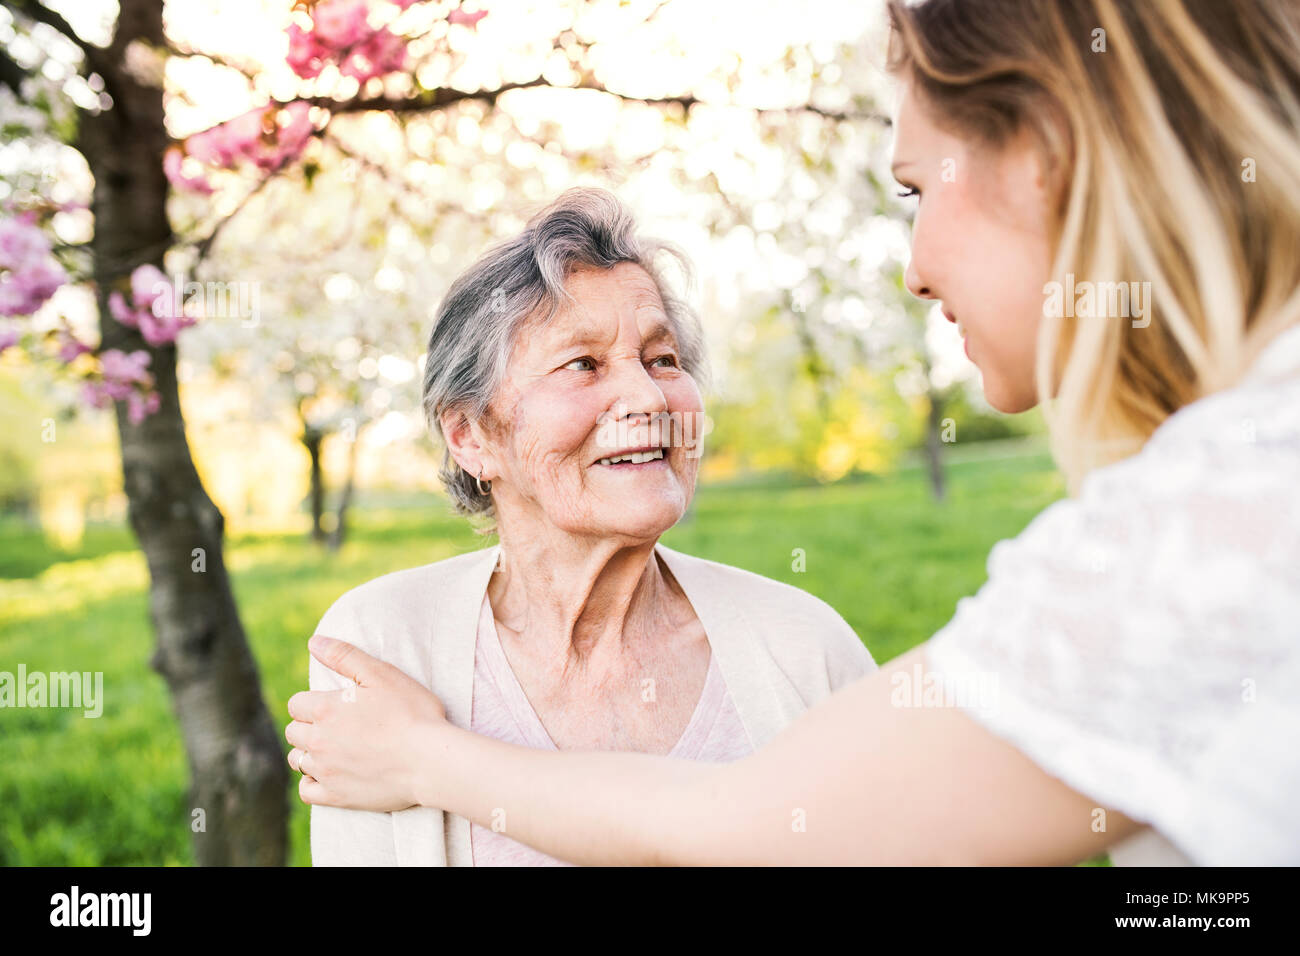 Elderly grandmother and granddaughter in spring nature. - Stock Image